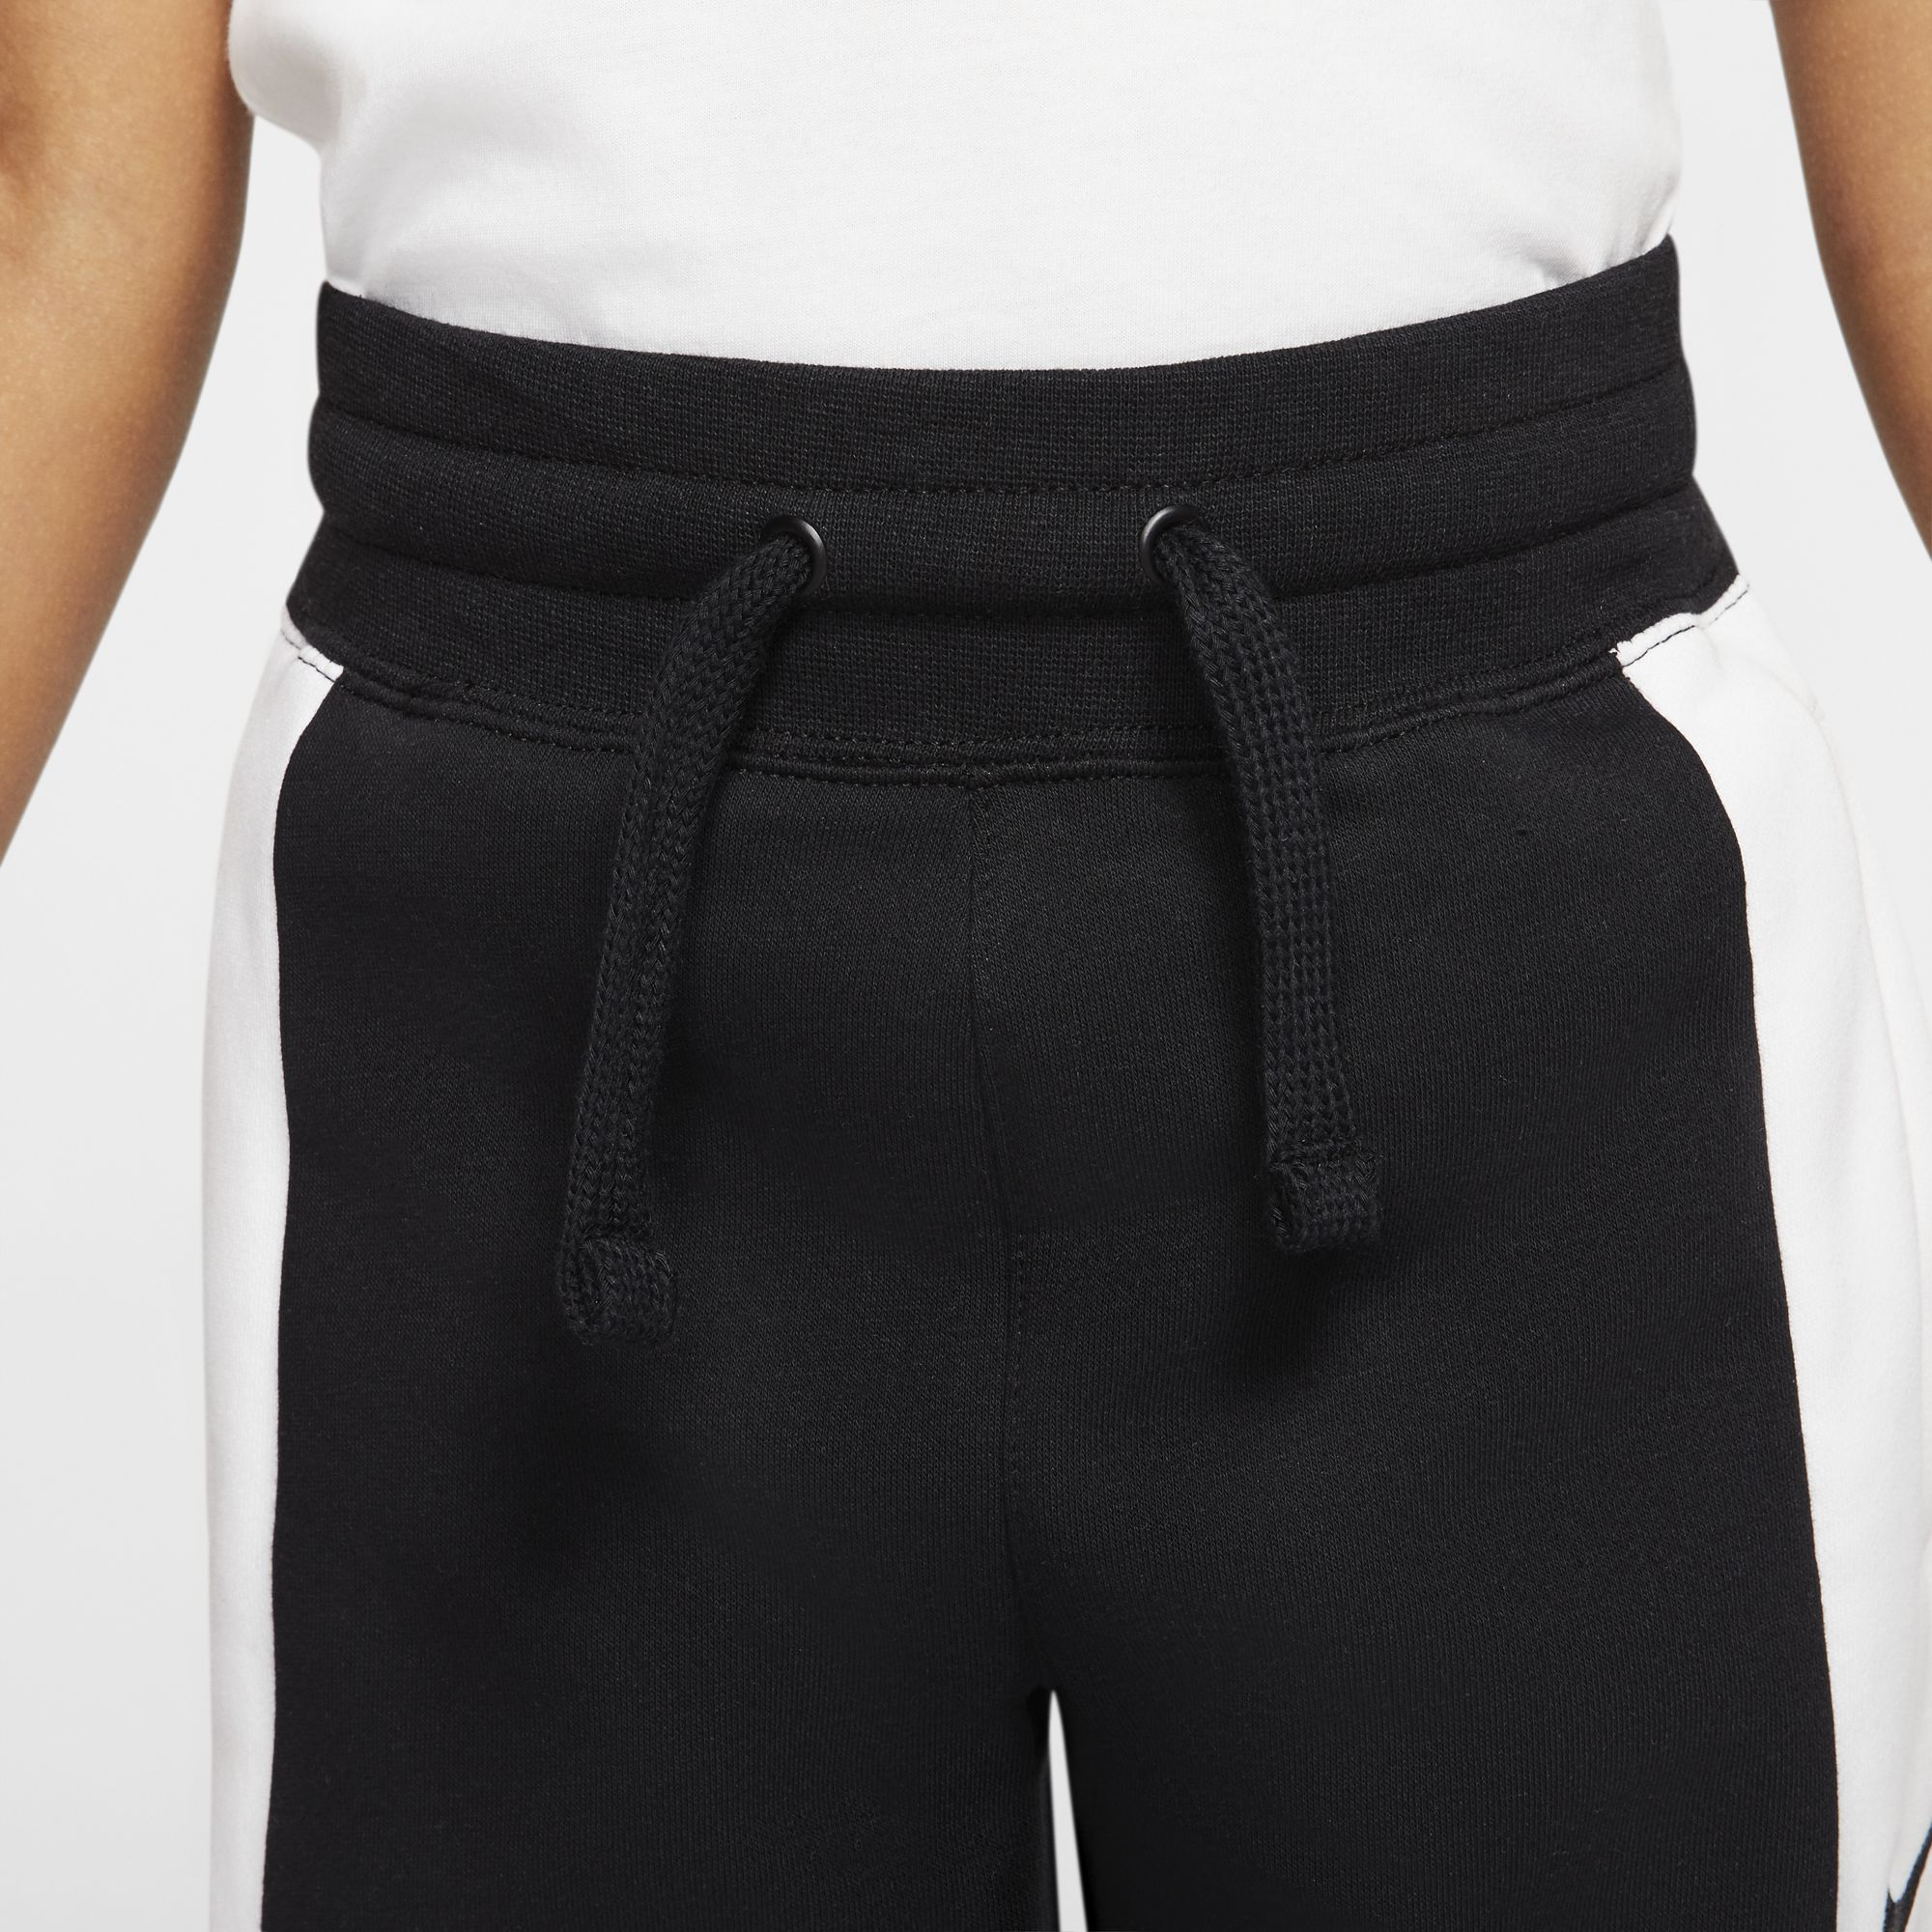 Nike Kids Air Fleece Pants - Black/White